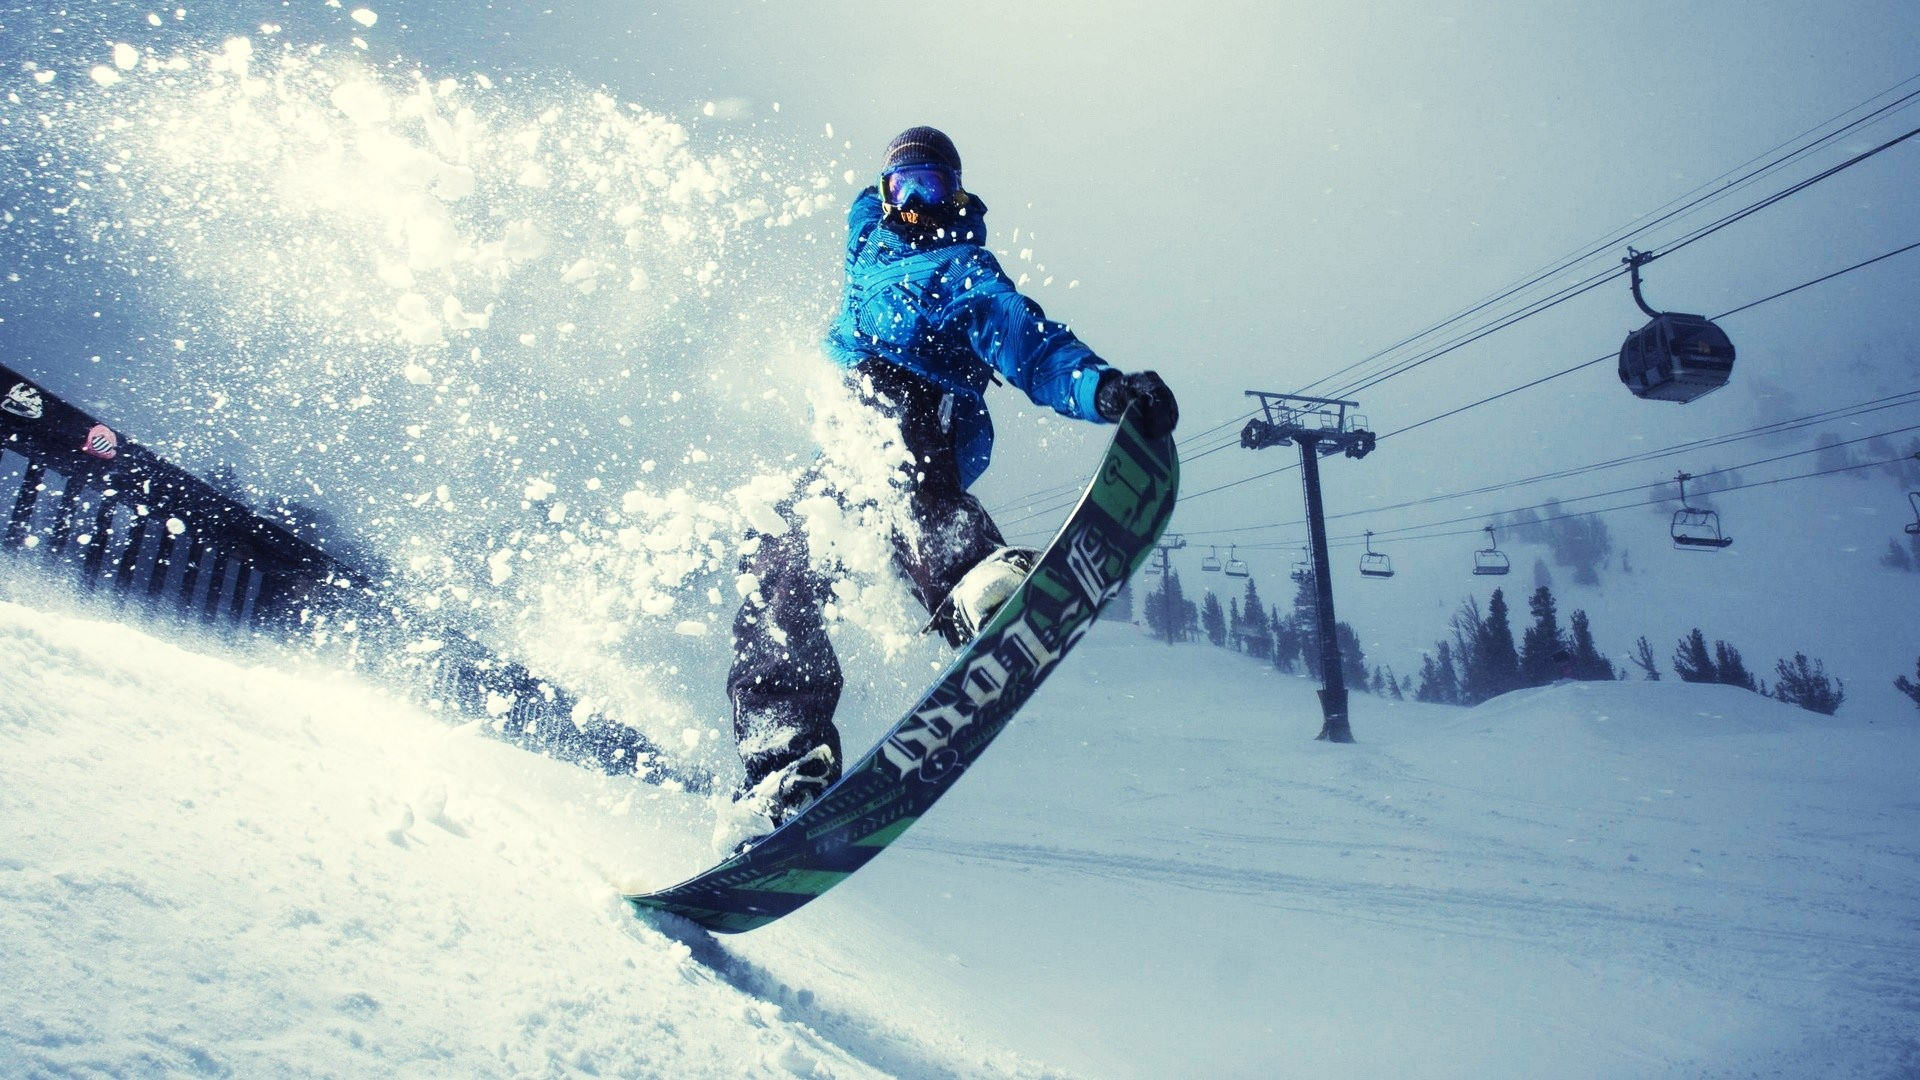 Snowboarding still has soul.